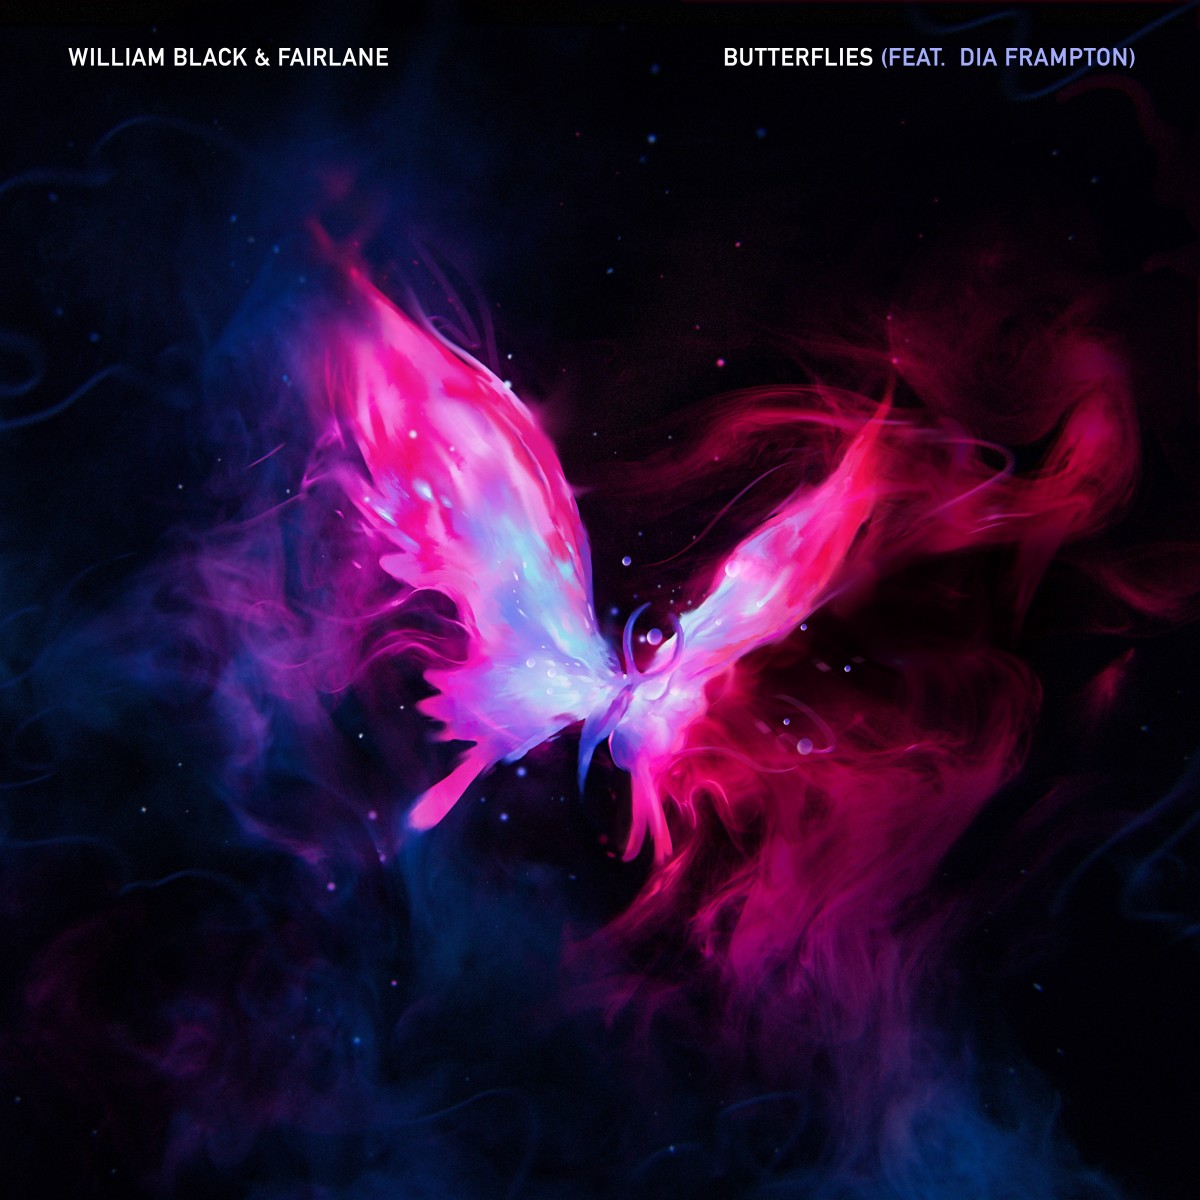 William Black & Fairlane - Butterflies (ALBUM ARTWORK)